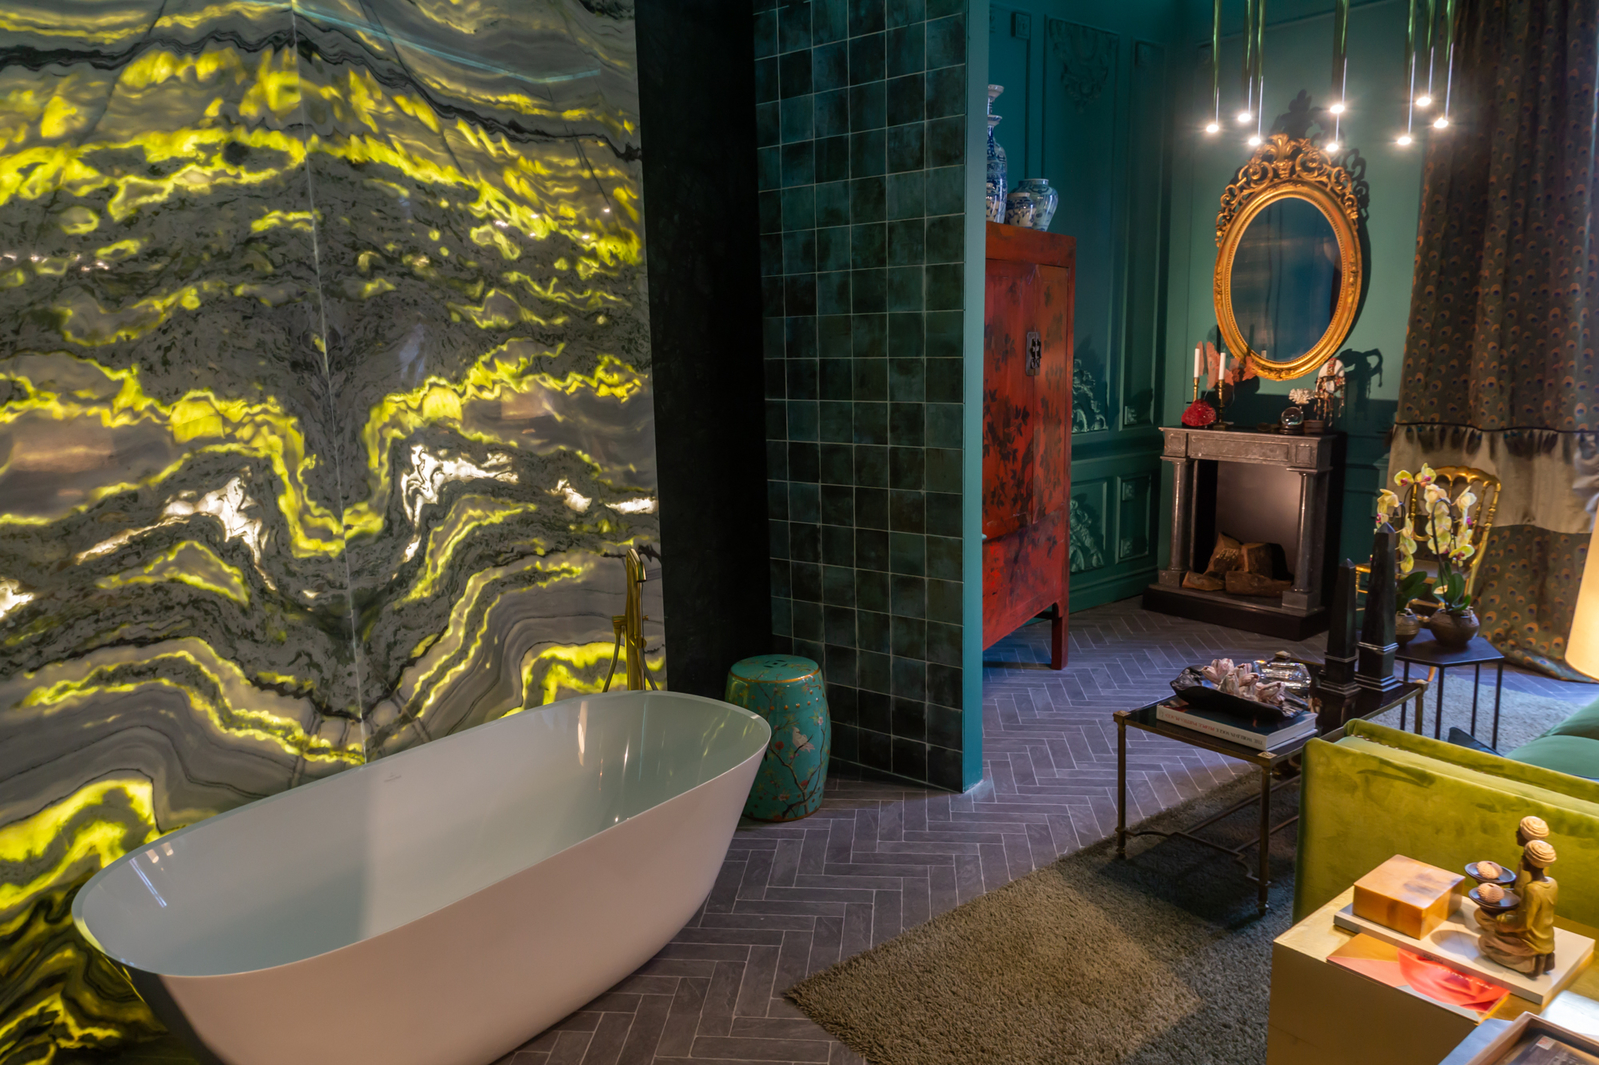 etit Boudoir bathroom designed by Fran Cassinello at Casa Decor 2019